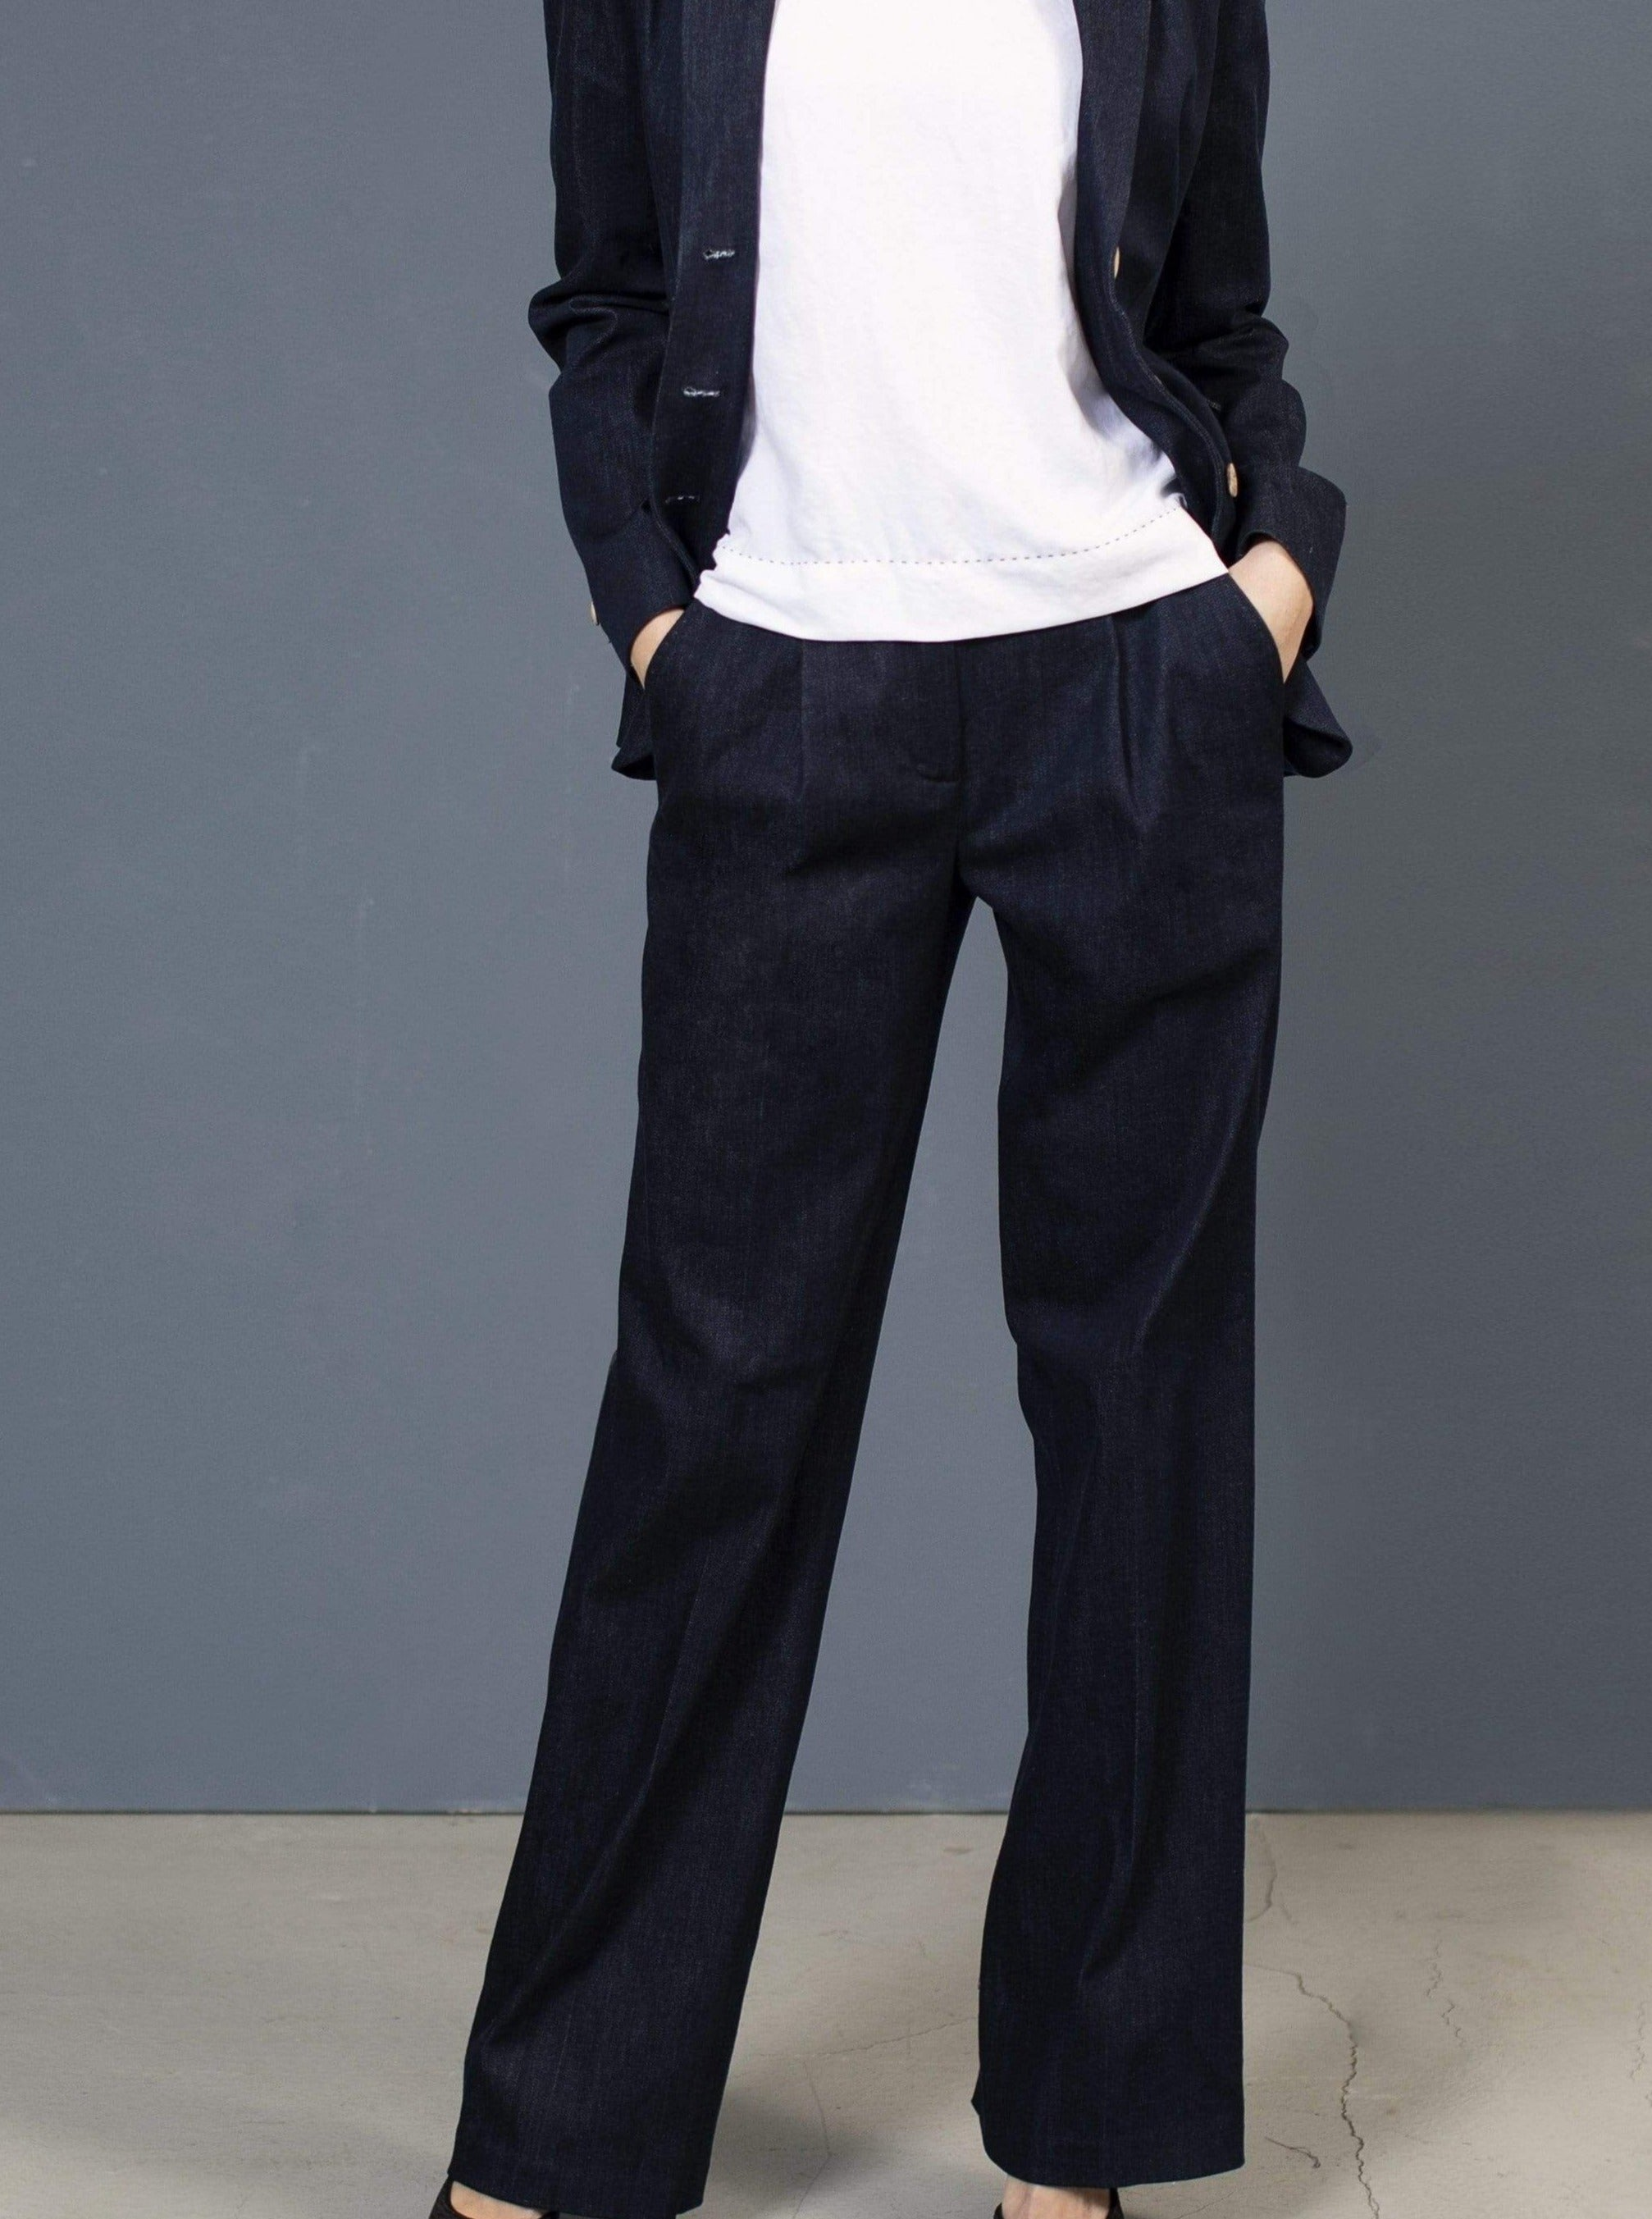 the Blue suit pant AMAL Pants. Organic Cotton. sustainable fashion ethical fashion